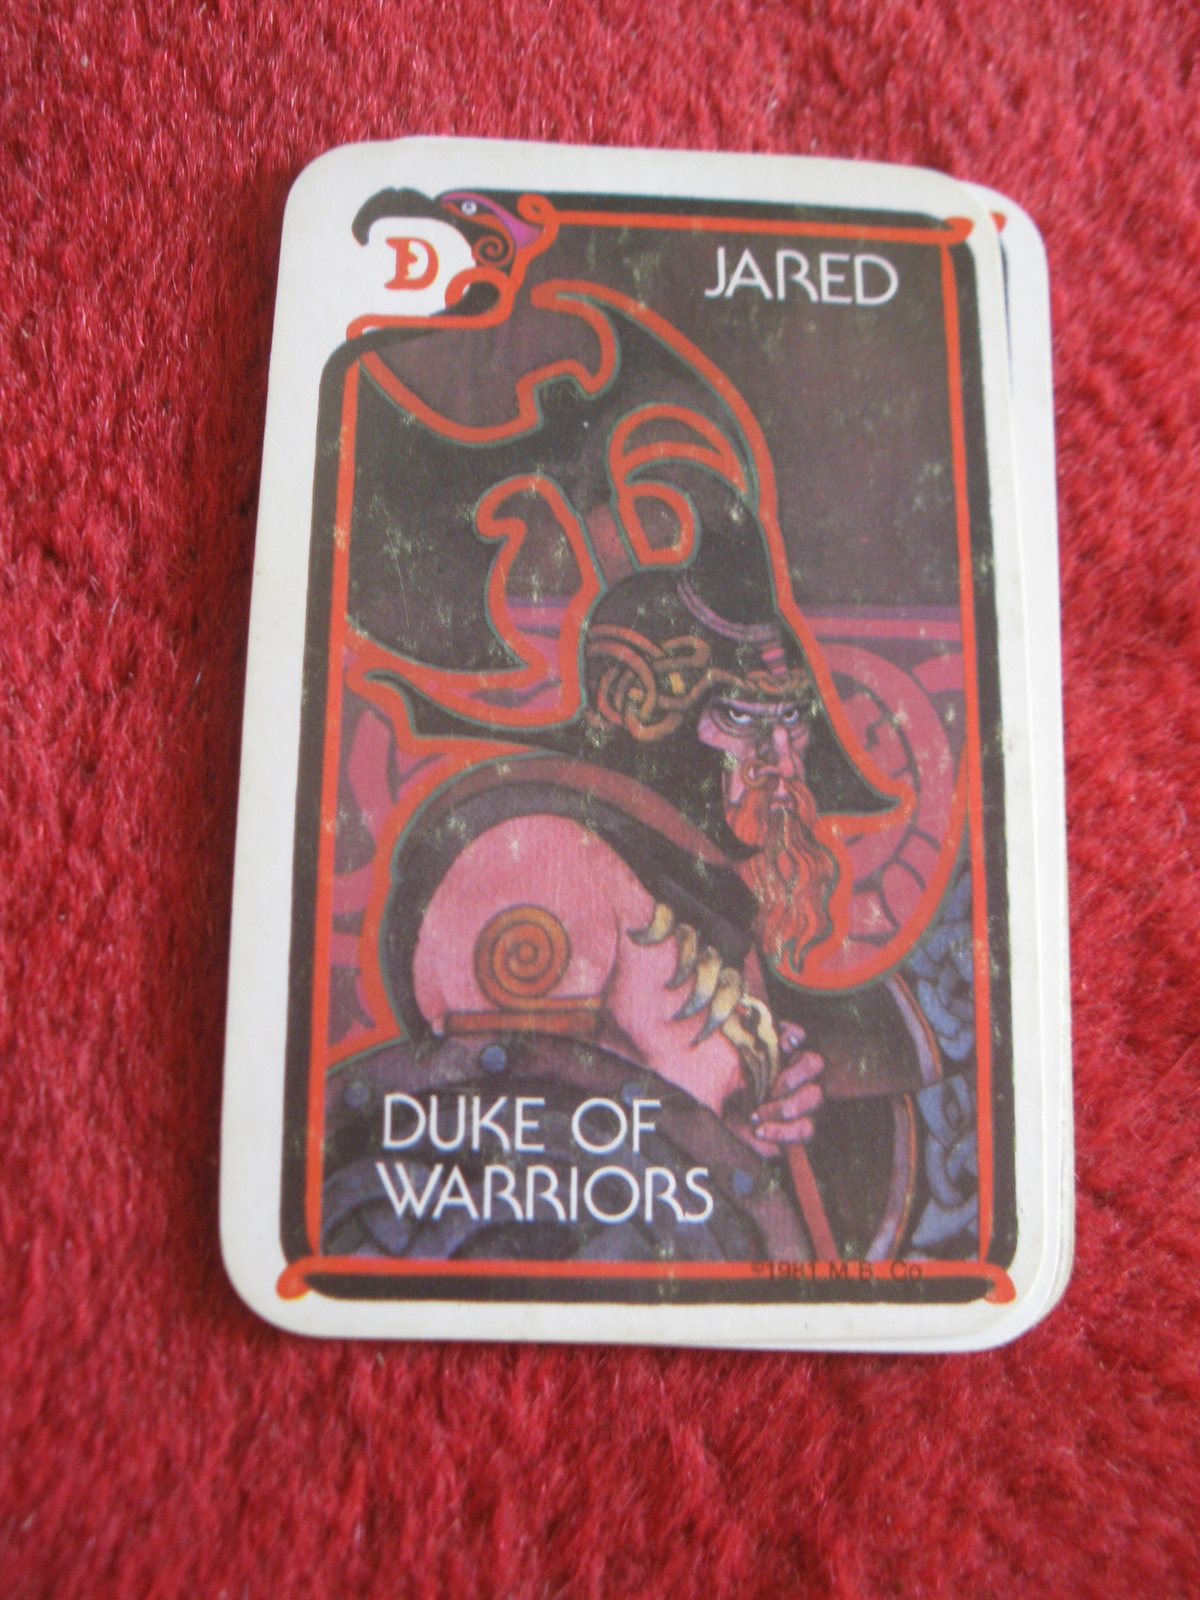 Primary image for 1981 DragonMaster Board game playing card: Jared, Duke of Warriors